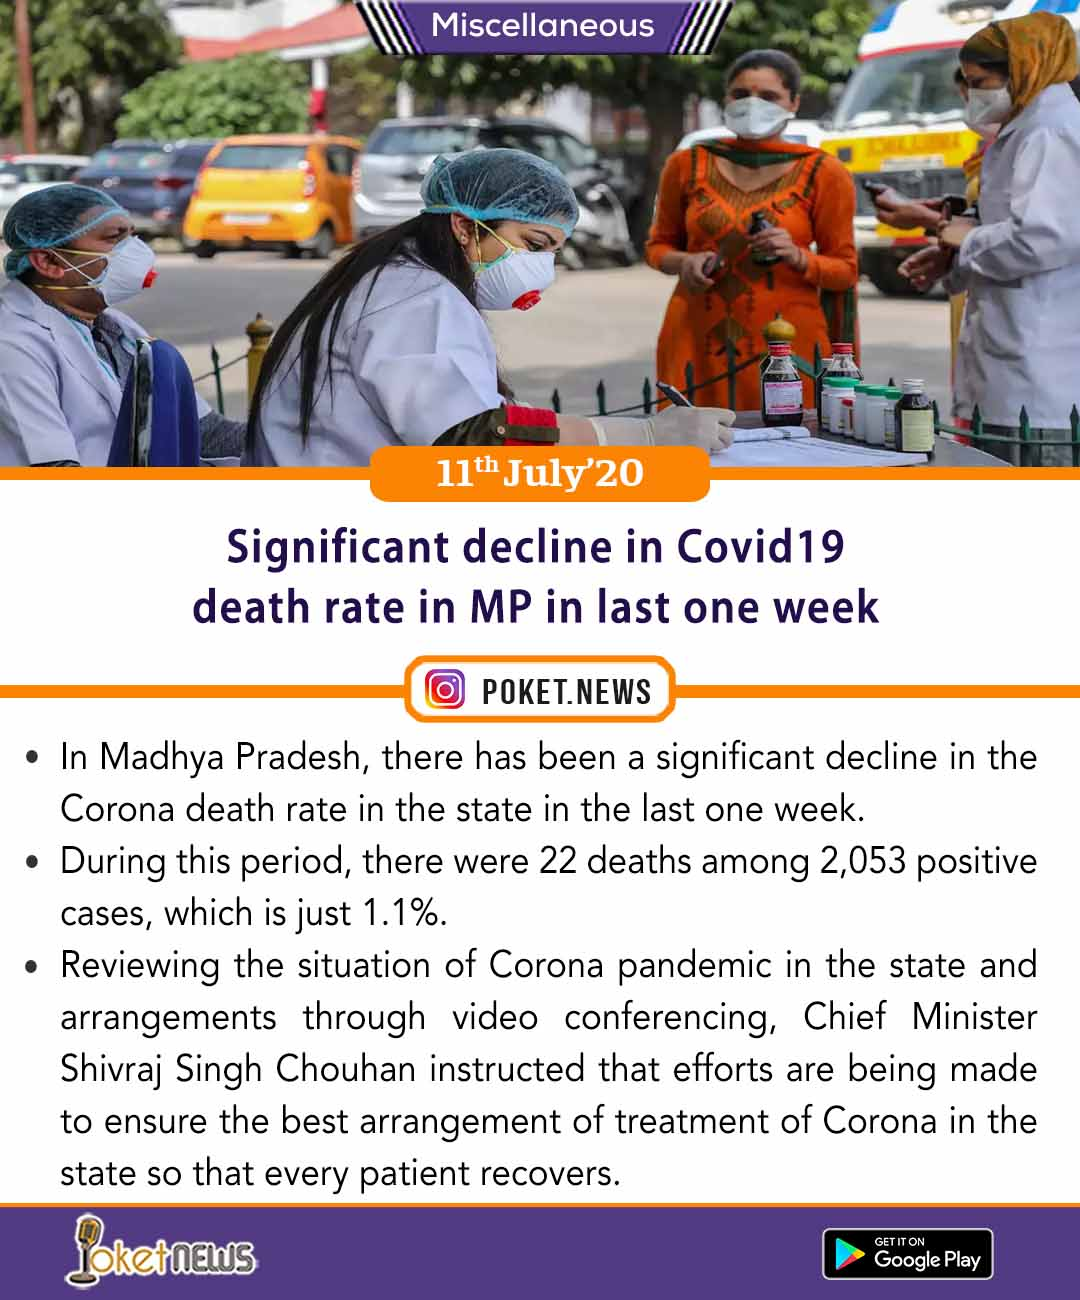 Significant decline in Covid19 death rate in MP in last one week